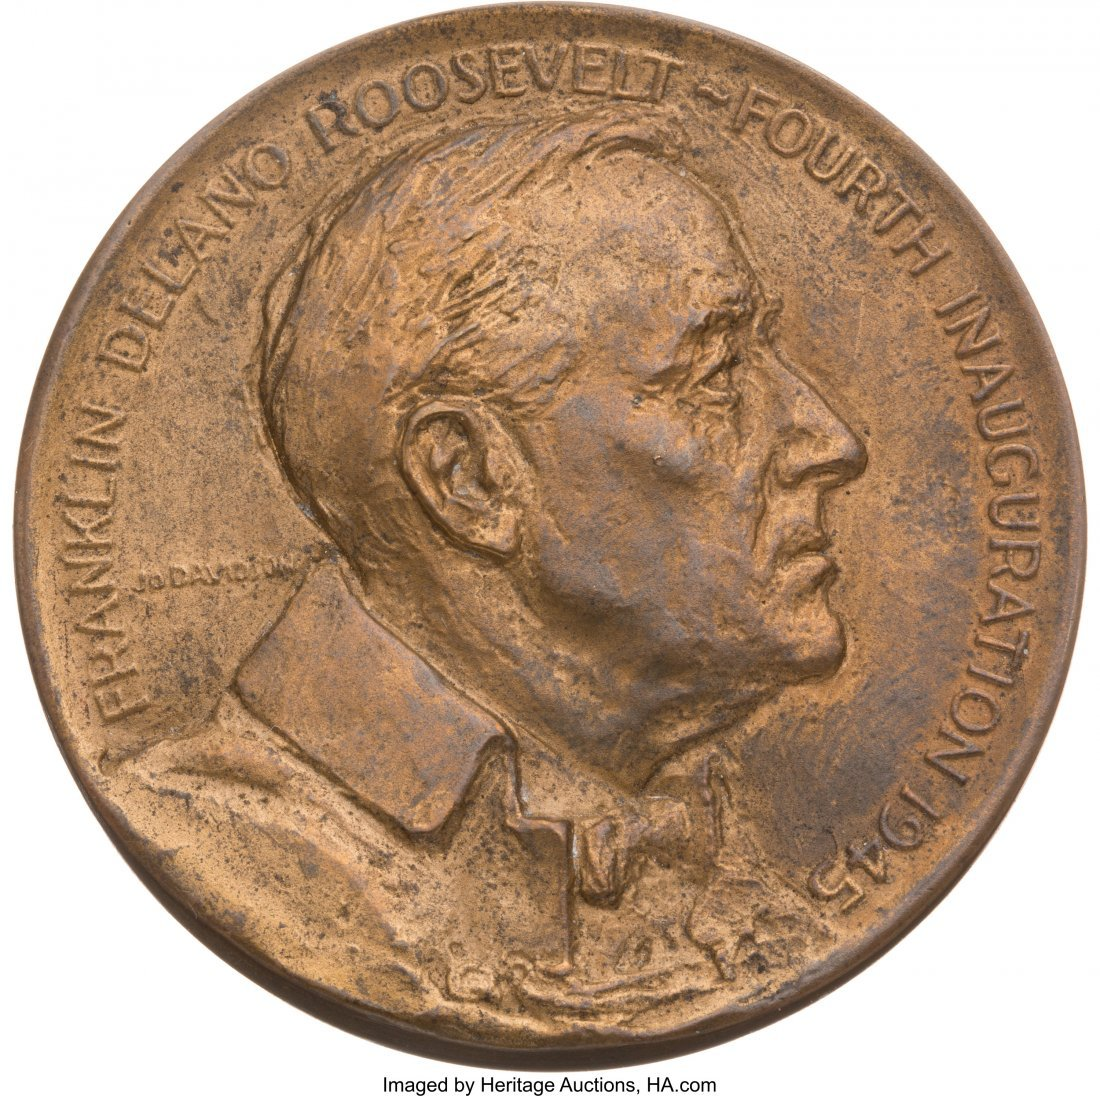 43590: Franklin D. Roosevelt: 1945 Official Inaugural M